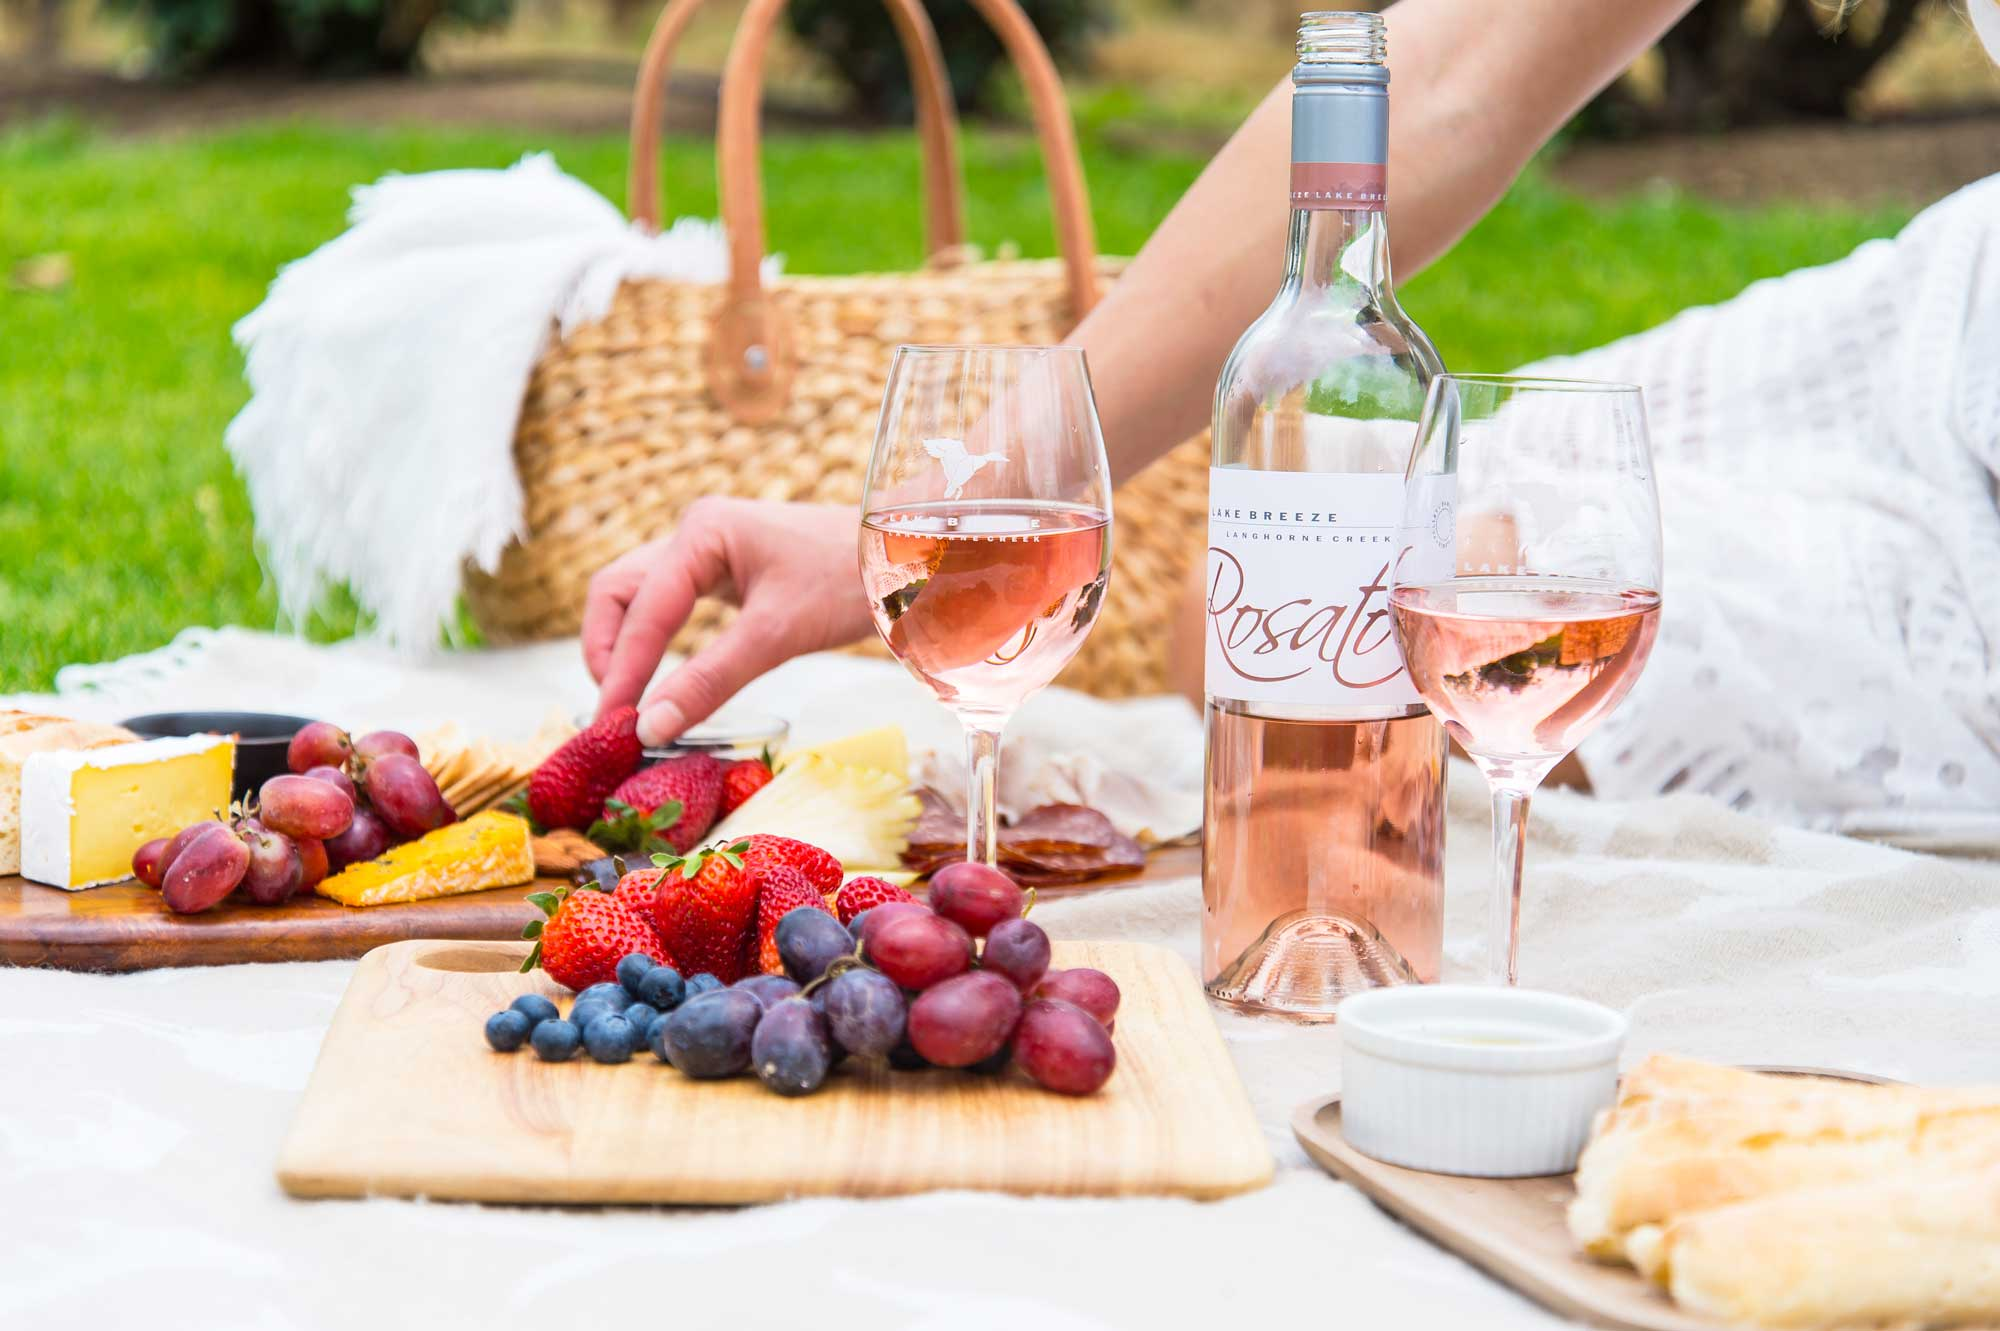 Lake-Breeze-Wines-Picnic-Rose-Rosato-and-Fruit-Platter.jpg